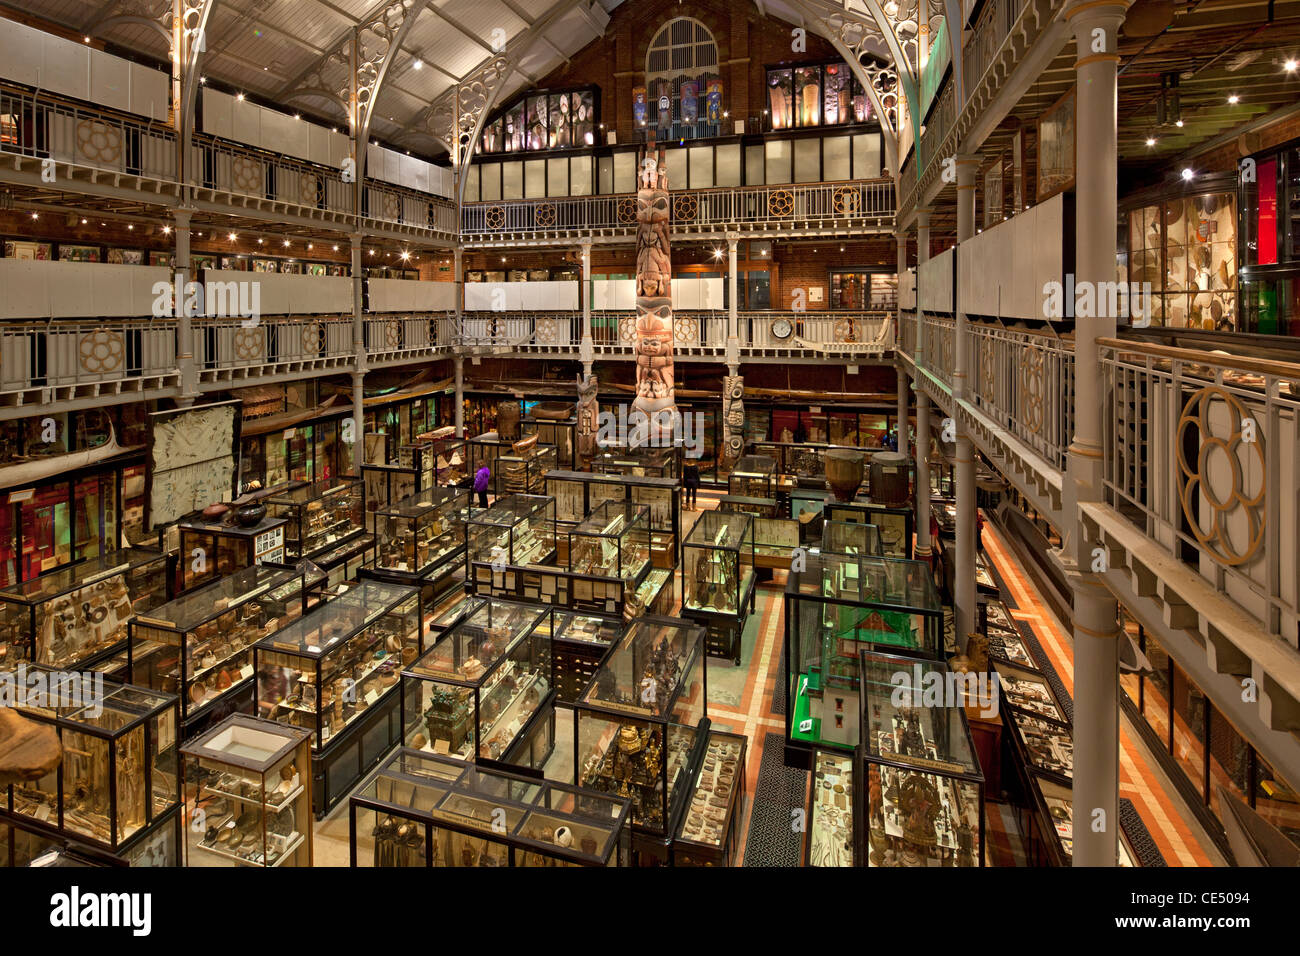 Pitt Rivers Museum, Oxford, England - Stock Image